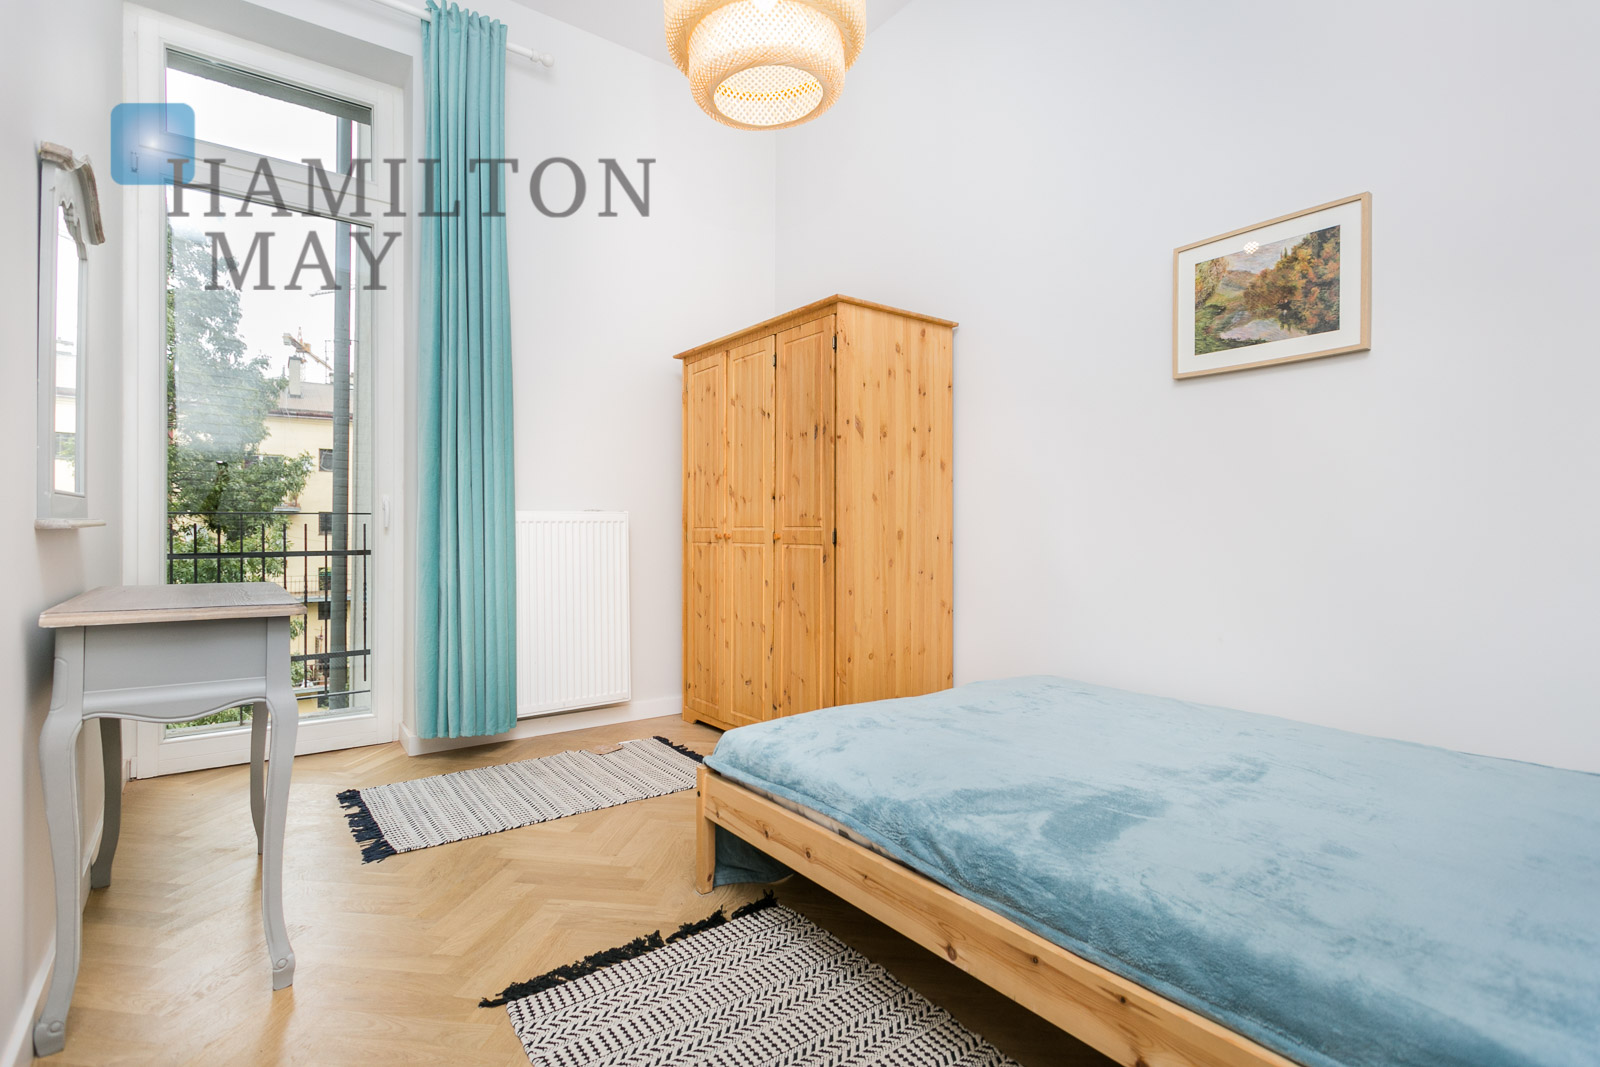 Brand new stylish one bedroom apartment for rent in the - One bedroom apartment for rent hamilton ...